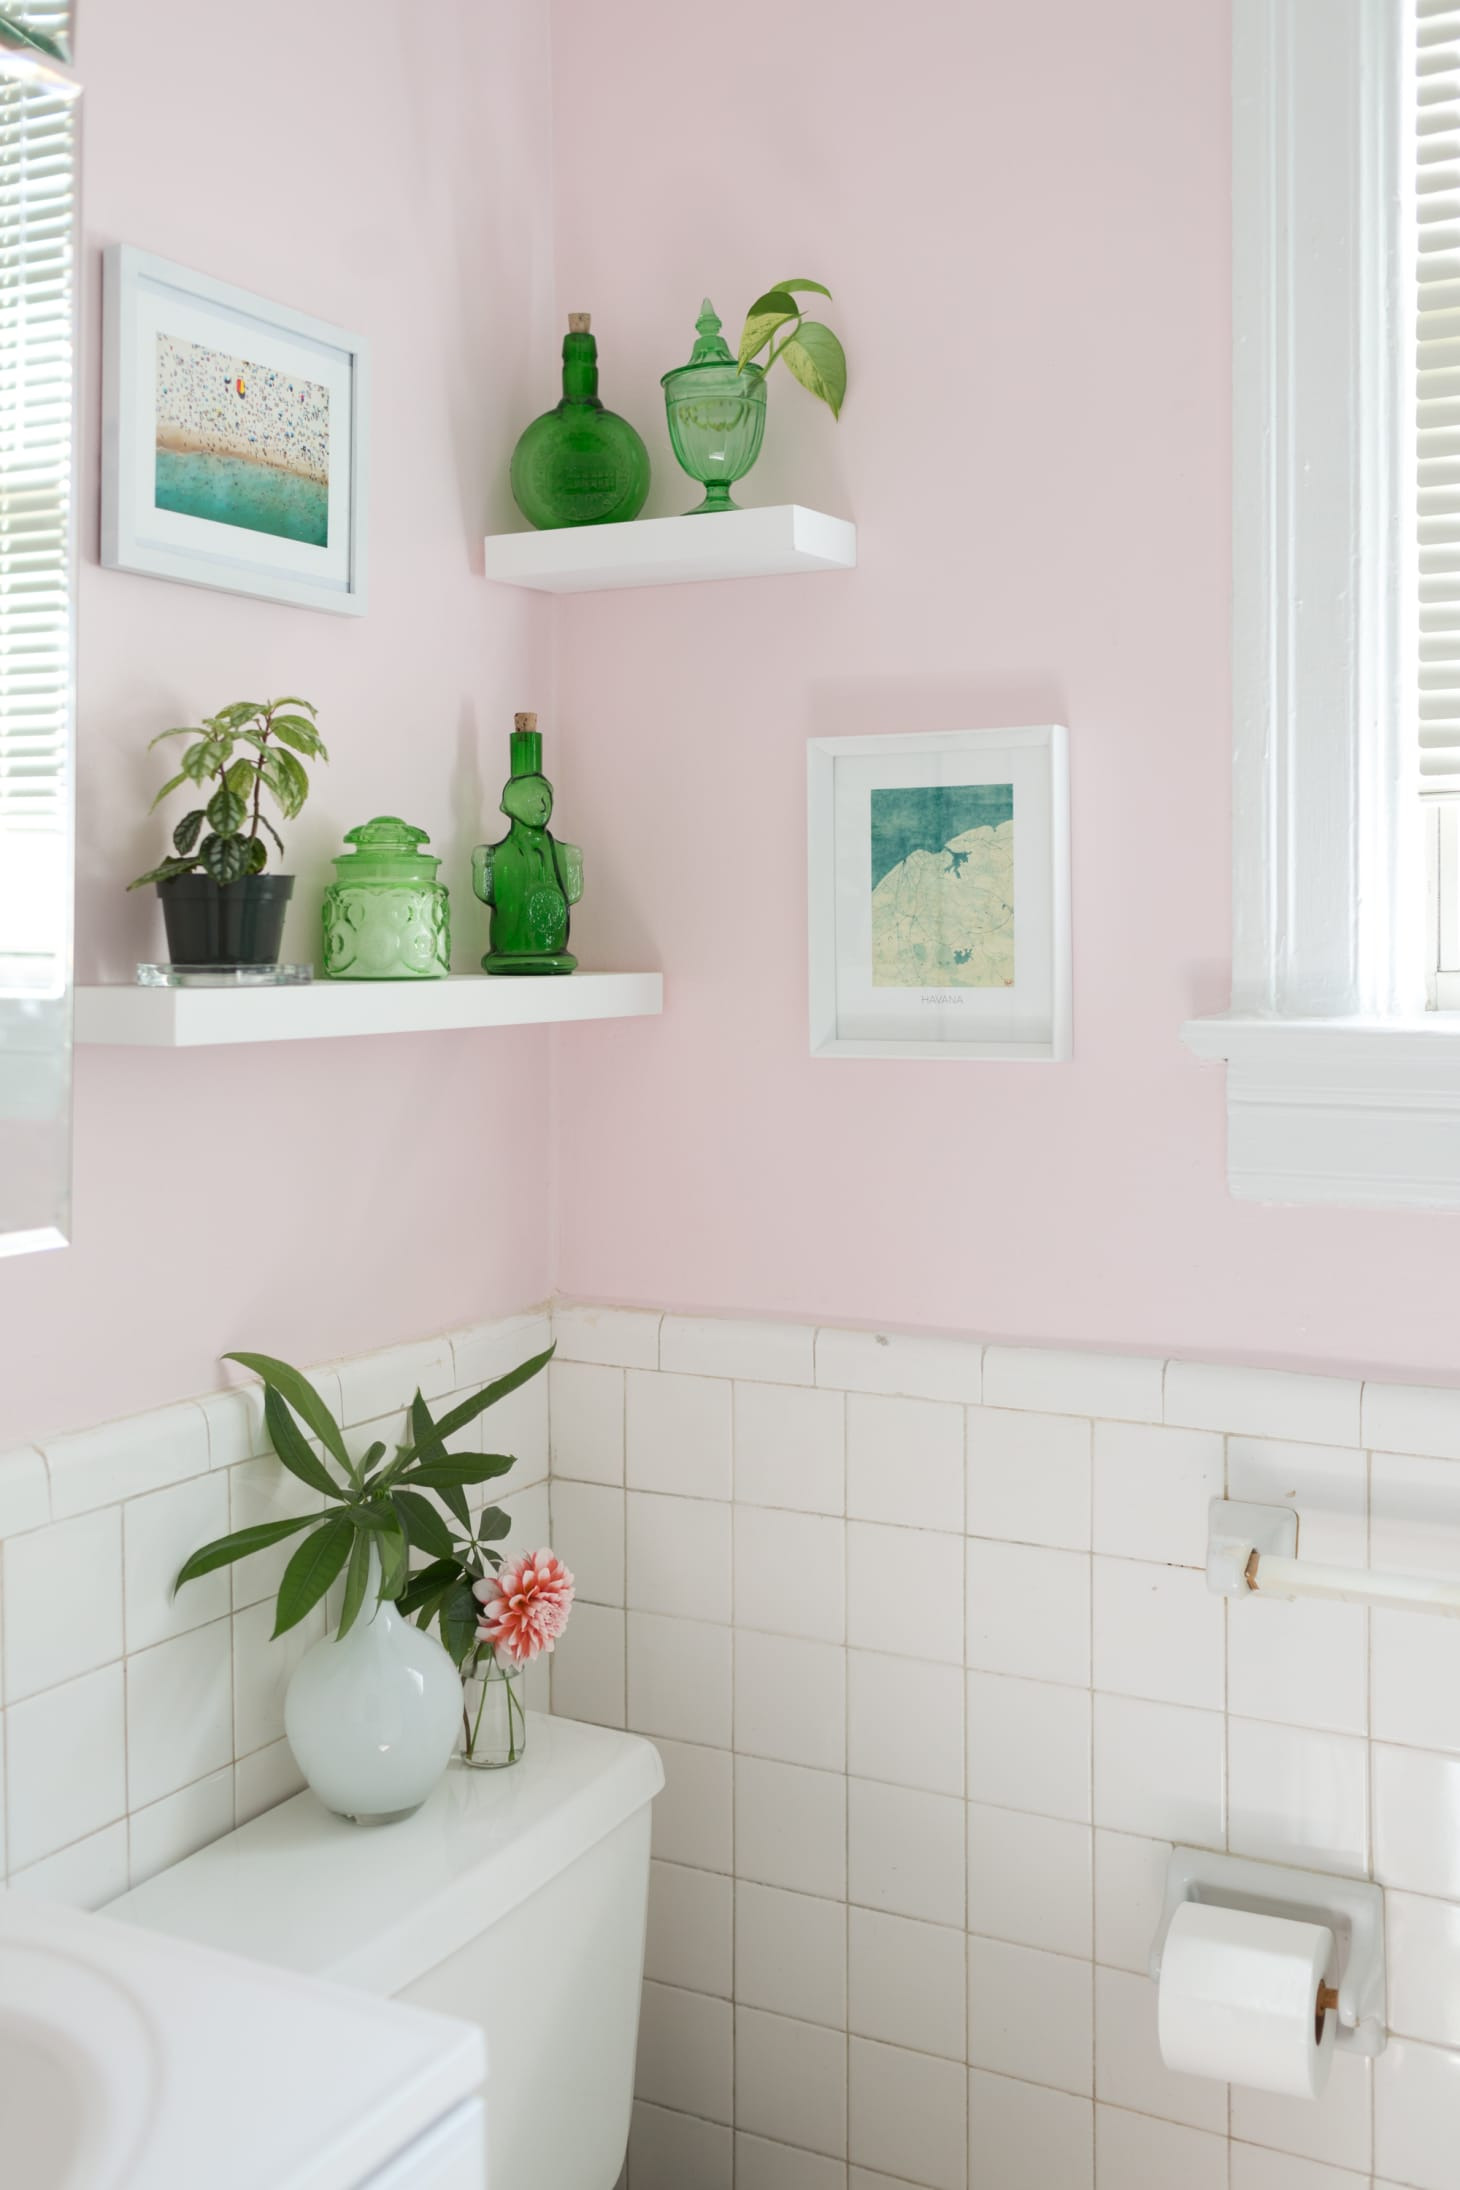 Decorating Ideas for A Small Bathroom Awesome 50 Best Small Bathroom Decorating Ideas Tiny Bathroom